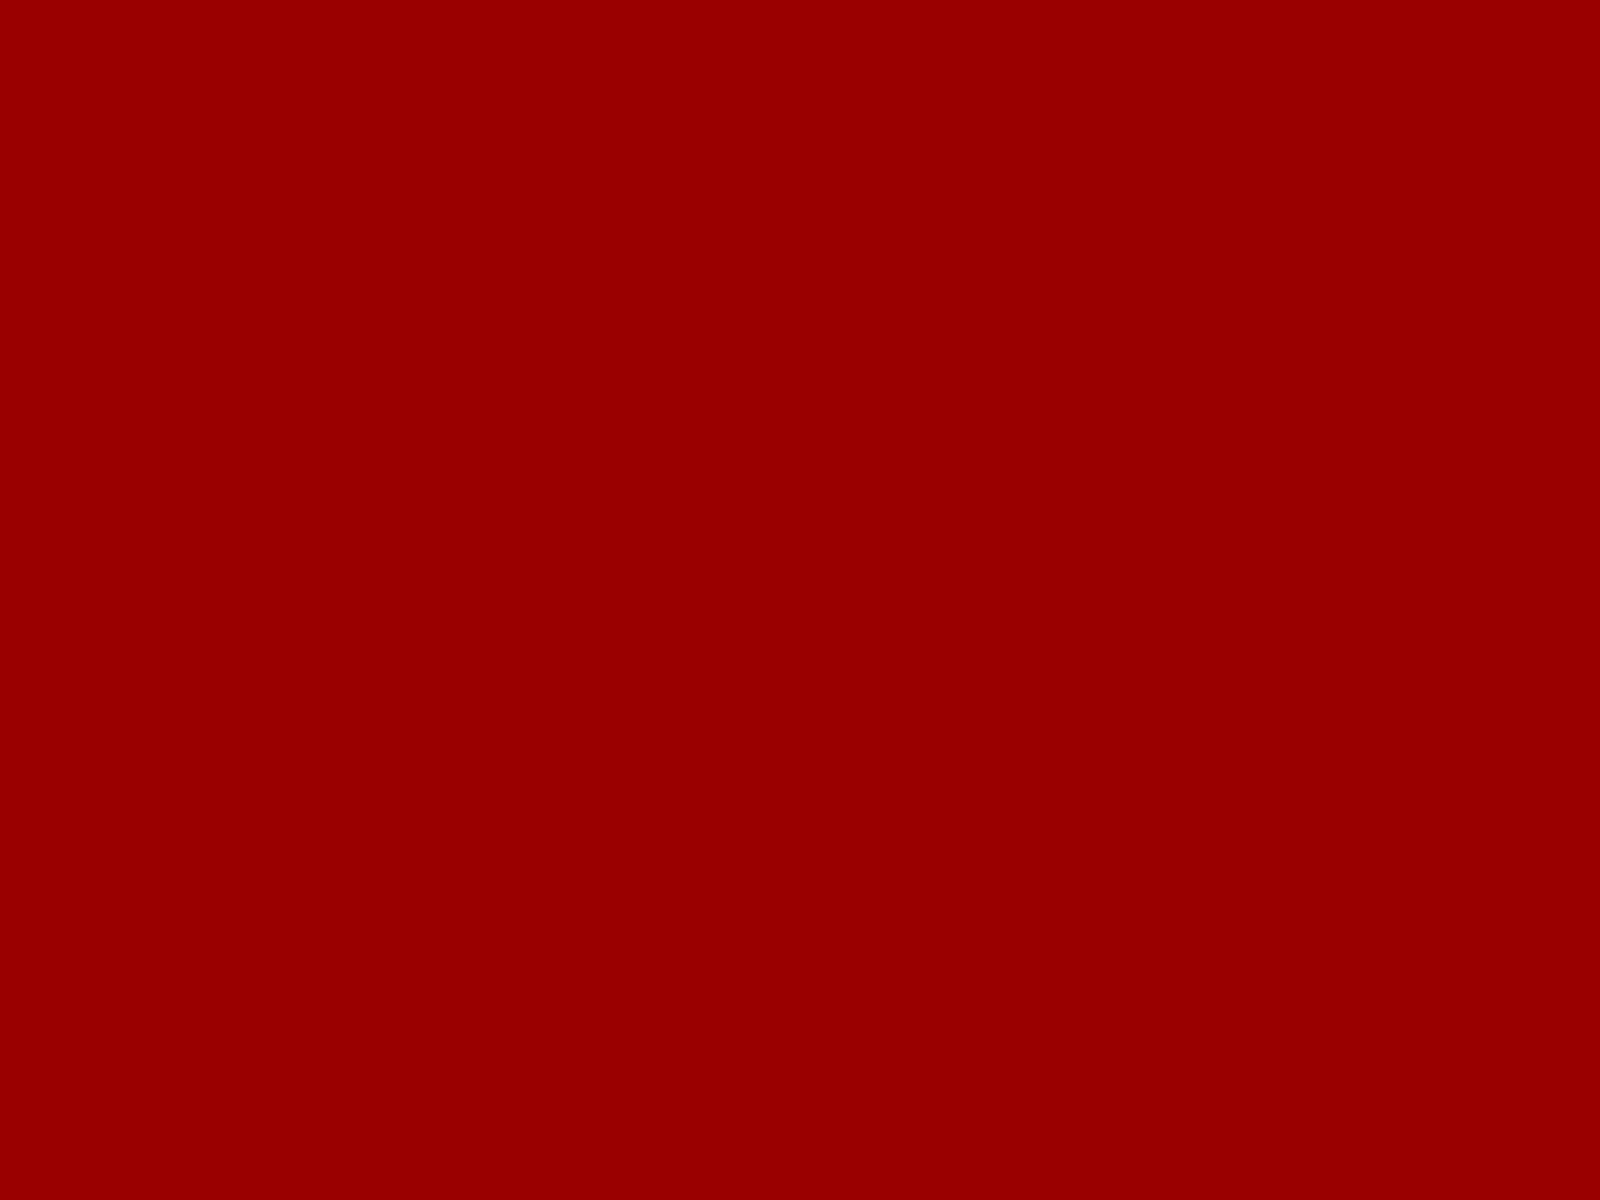 1600x1200 USC Cardinal Solid Color Background